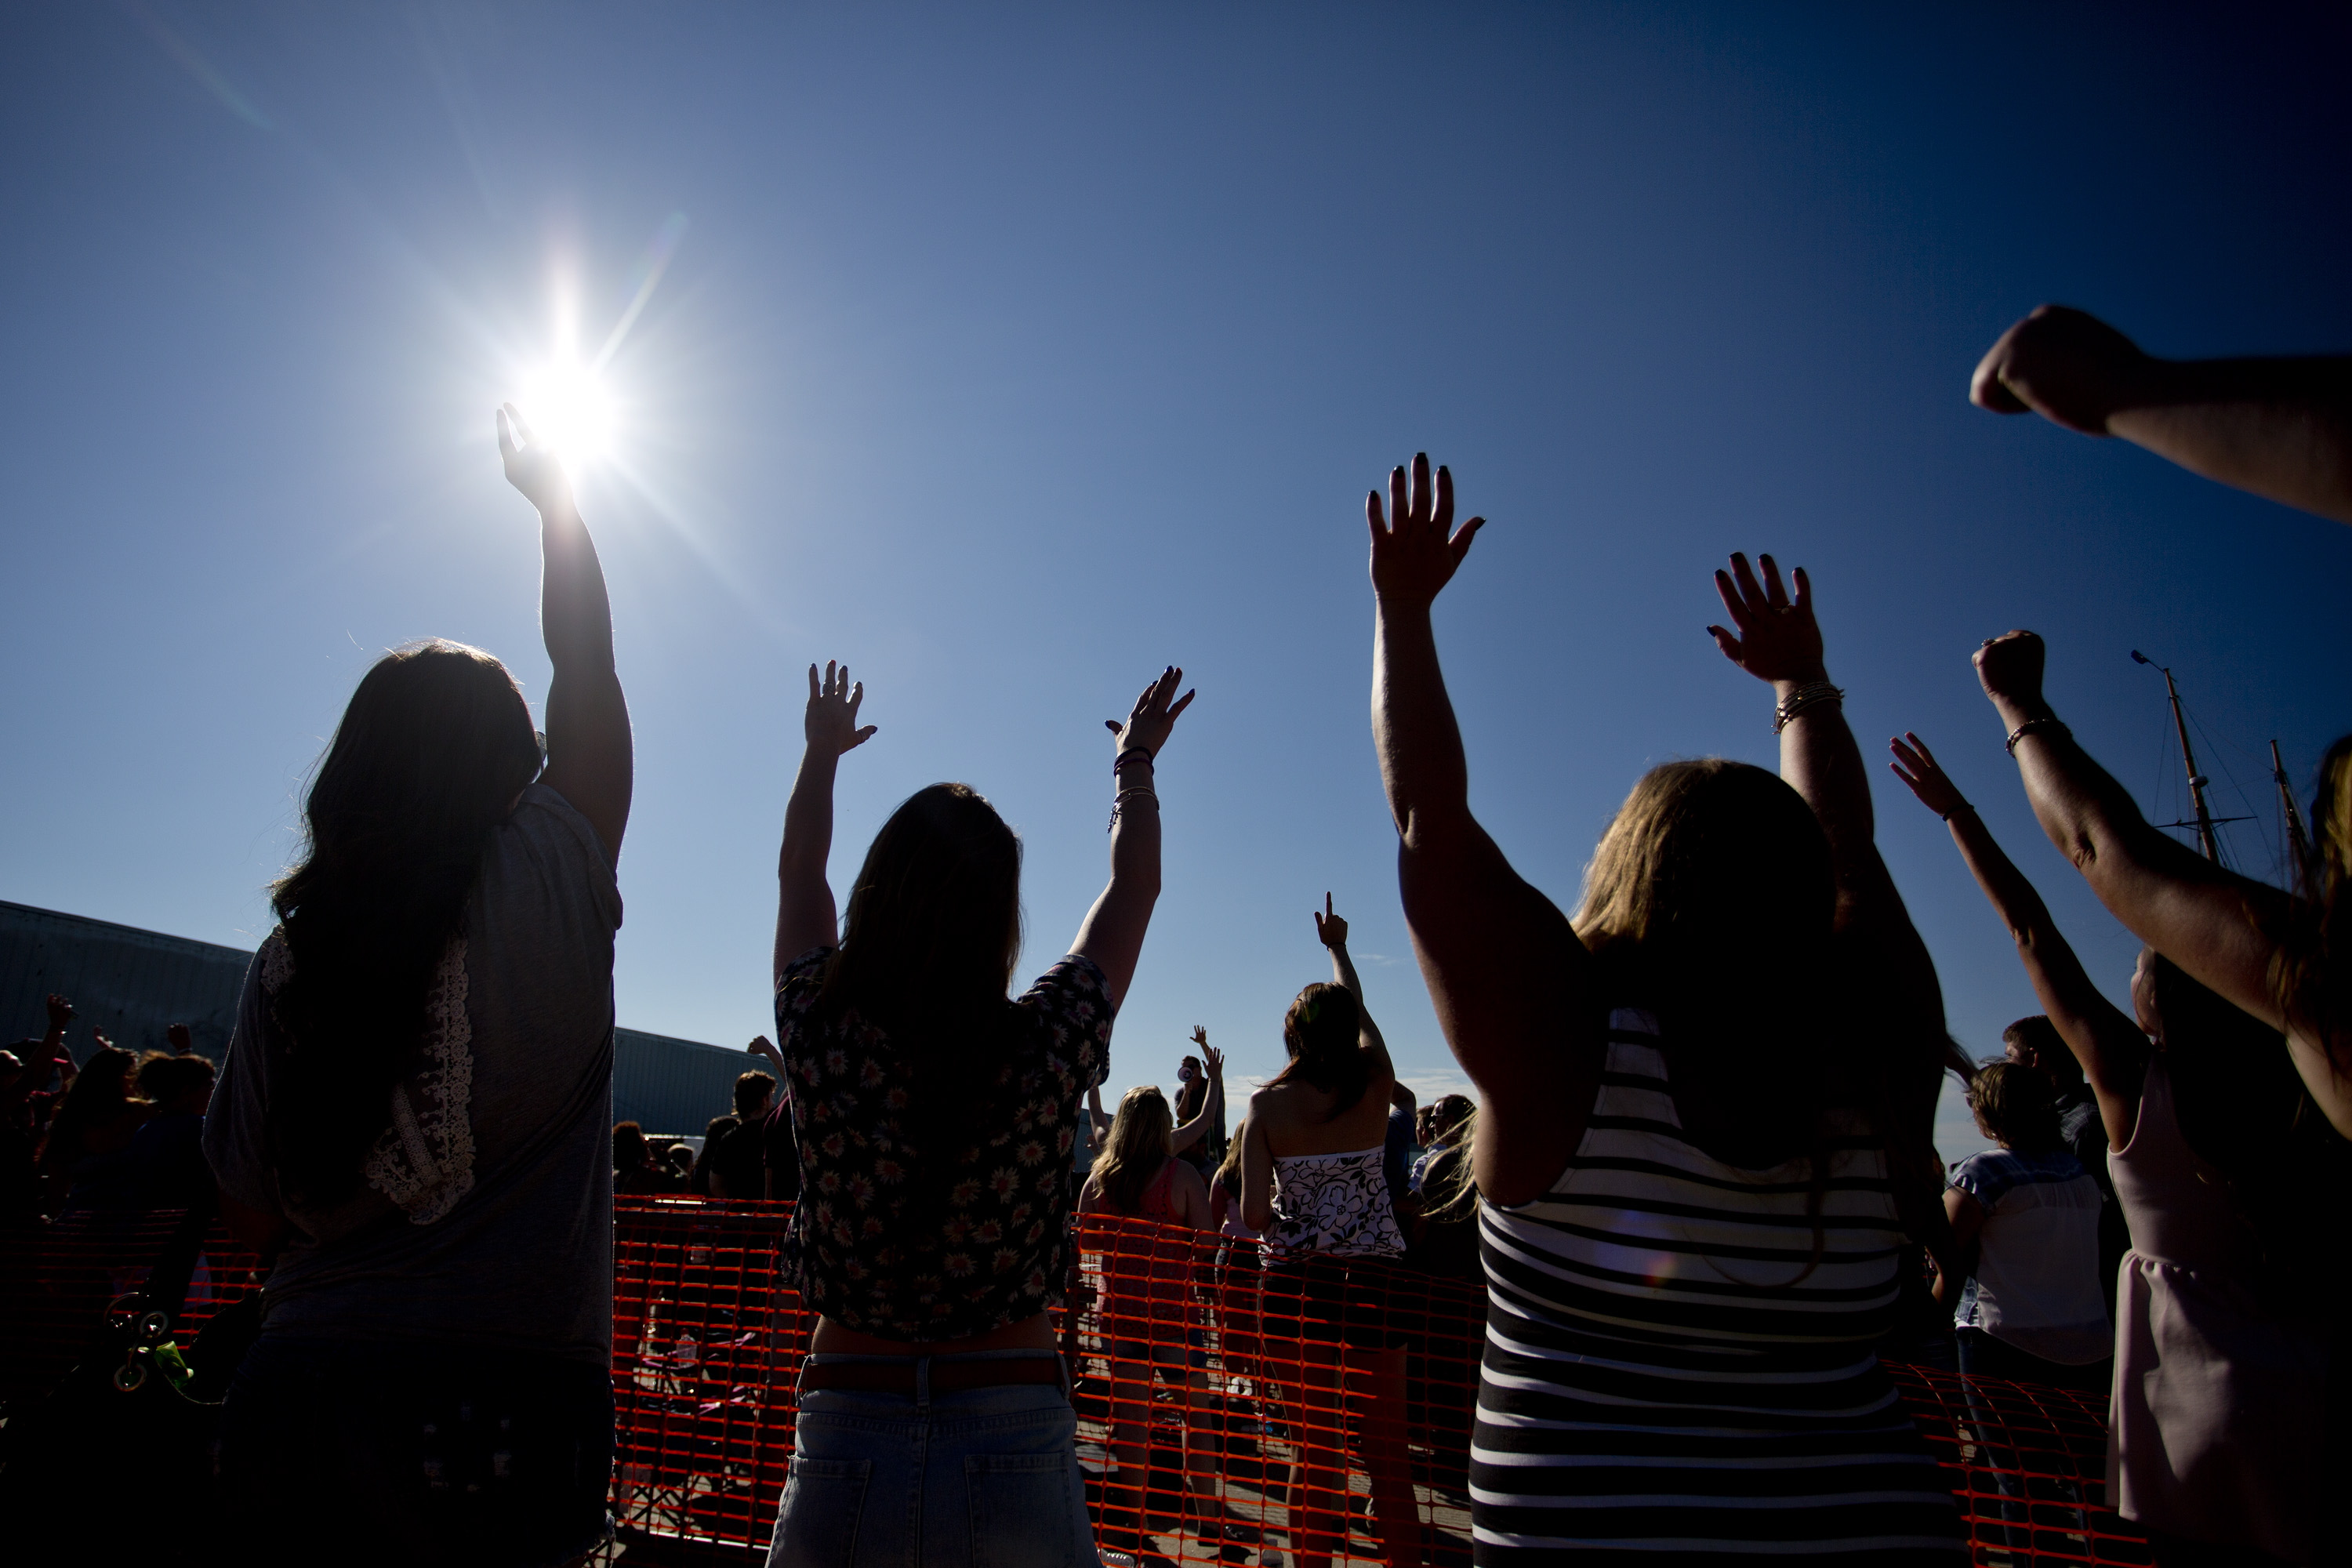 Fans cheer as they wait in line to tryout for American Idol at the Maine State Pier.